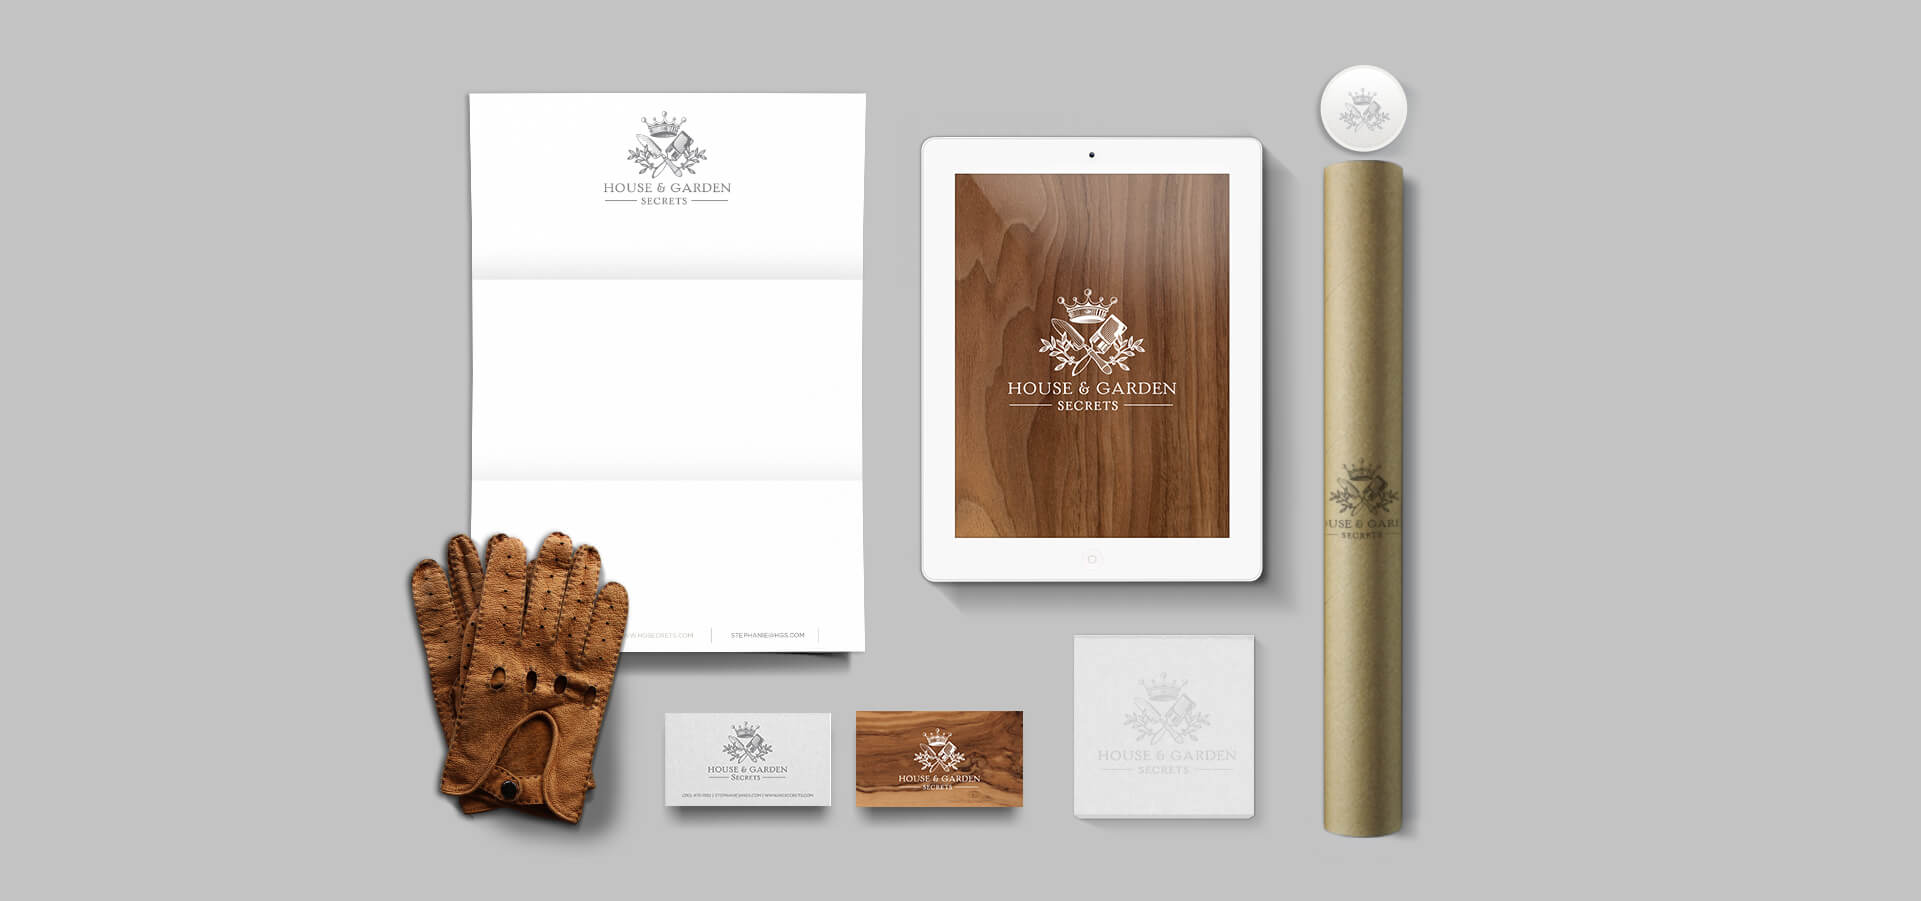 Stationery and digital branding